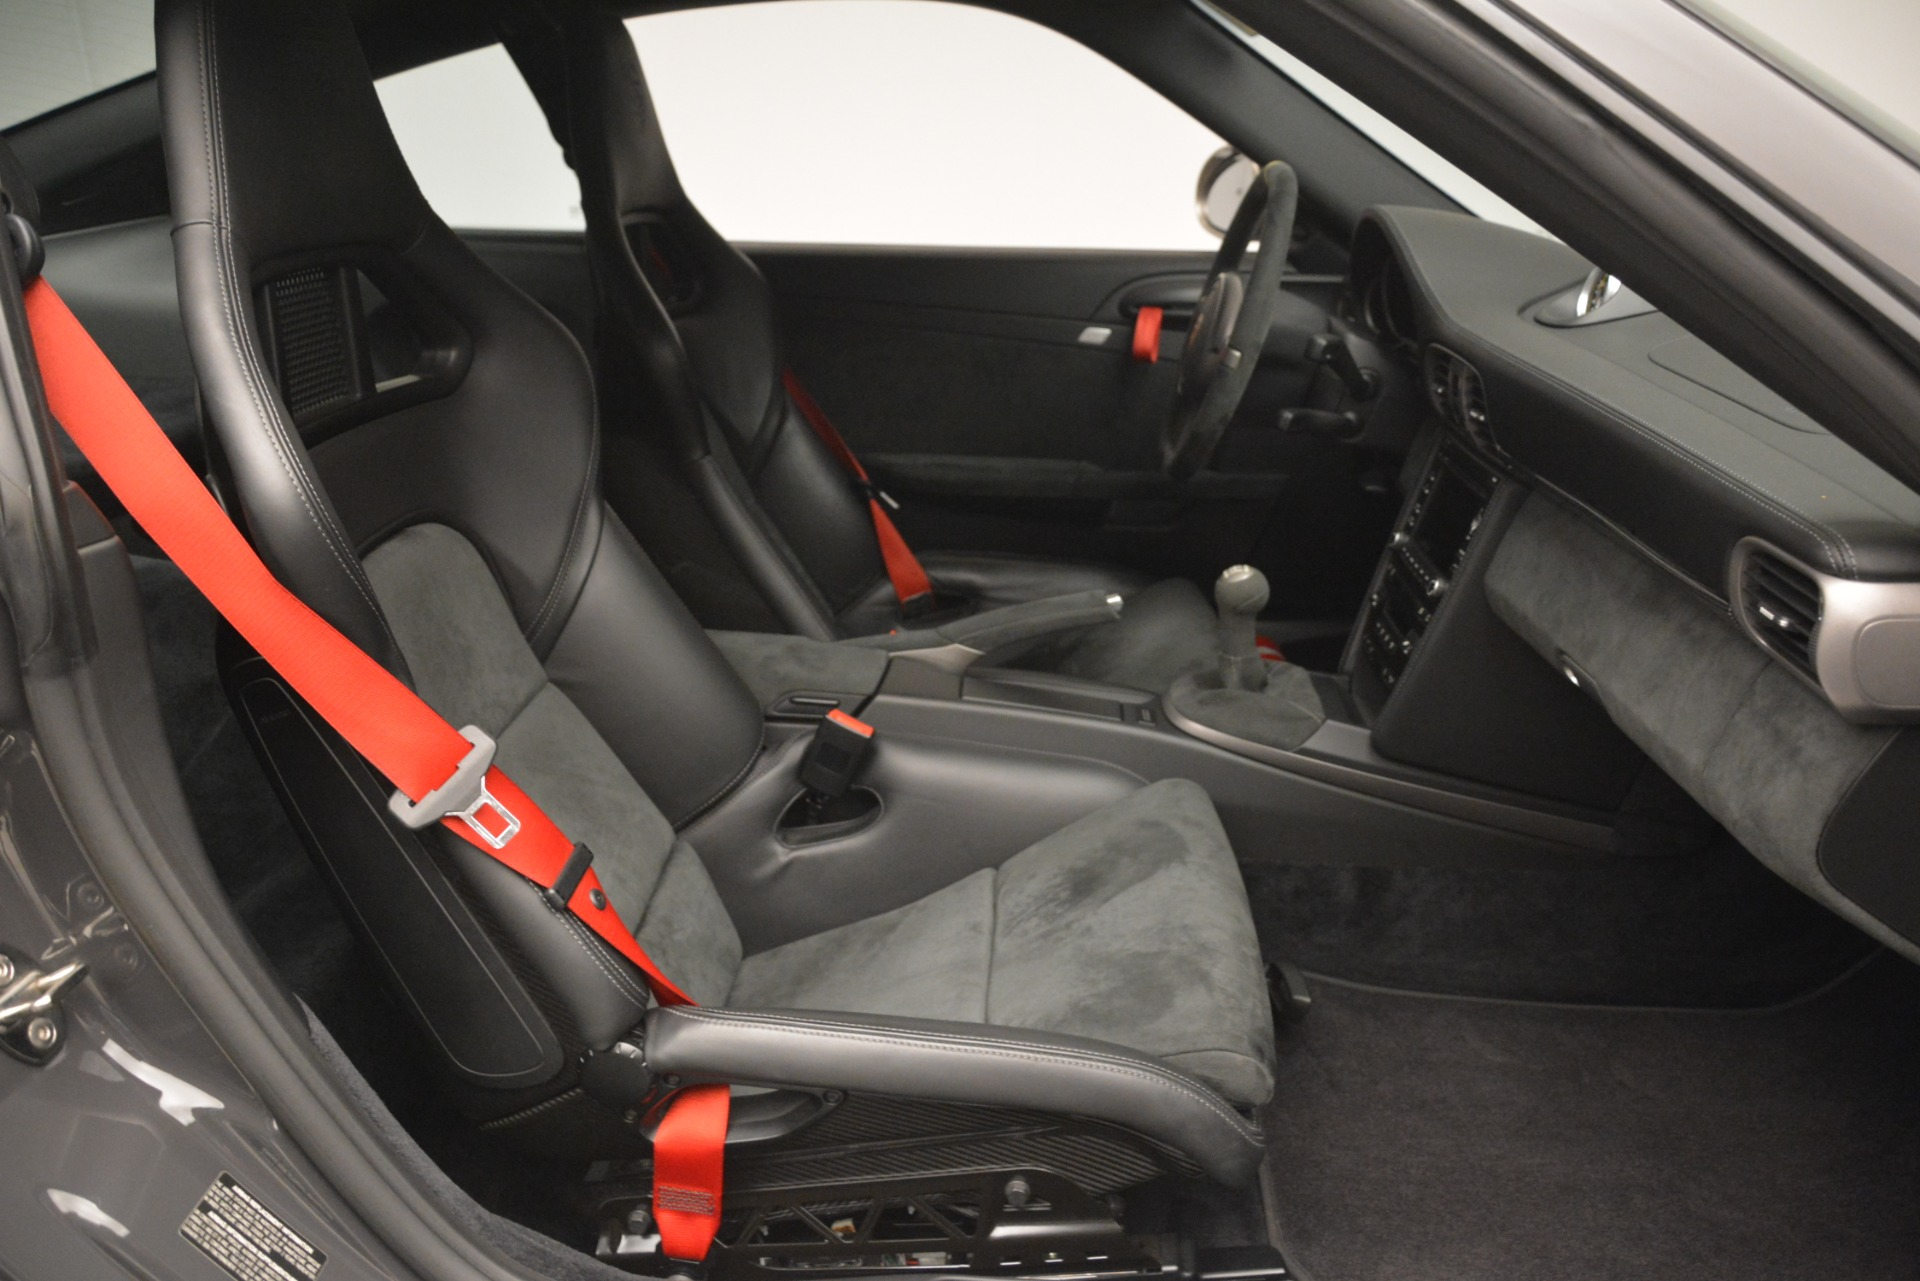 Used 2011 Porsche 911 GT3 RS For Sale In Greenwich, CT 3012_p19